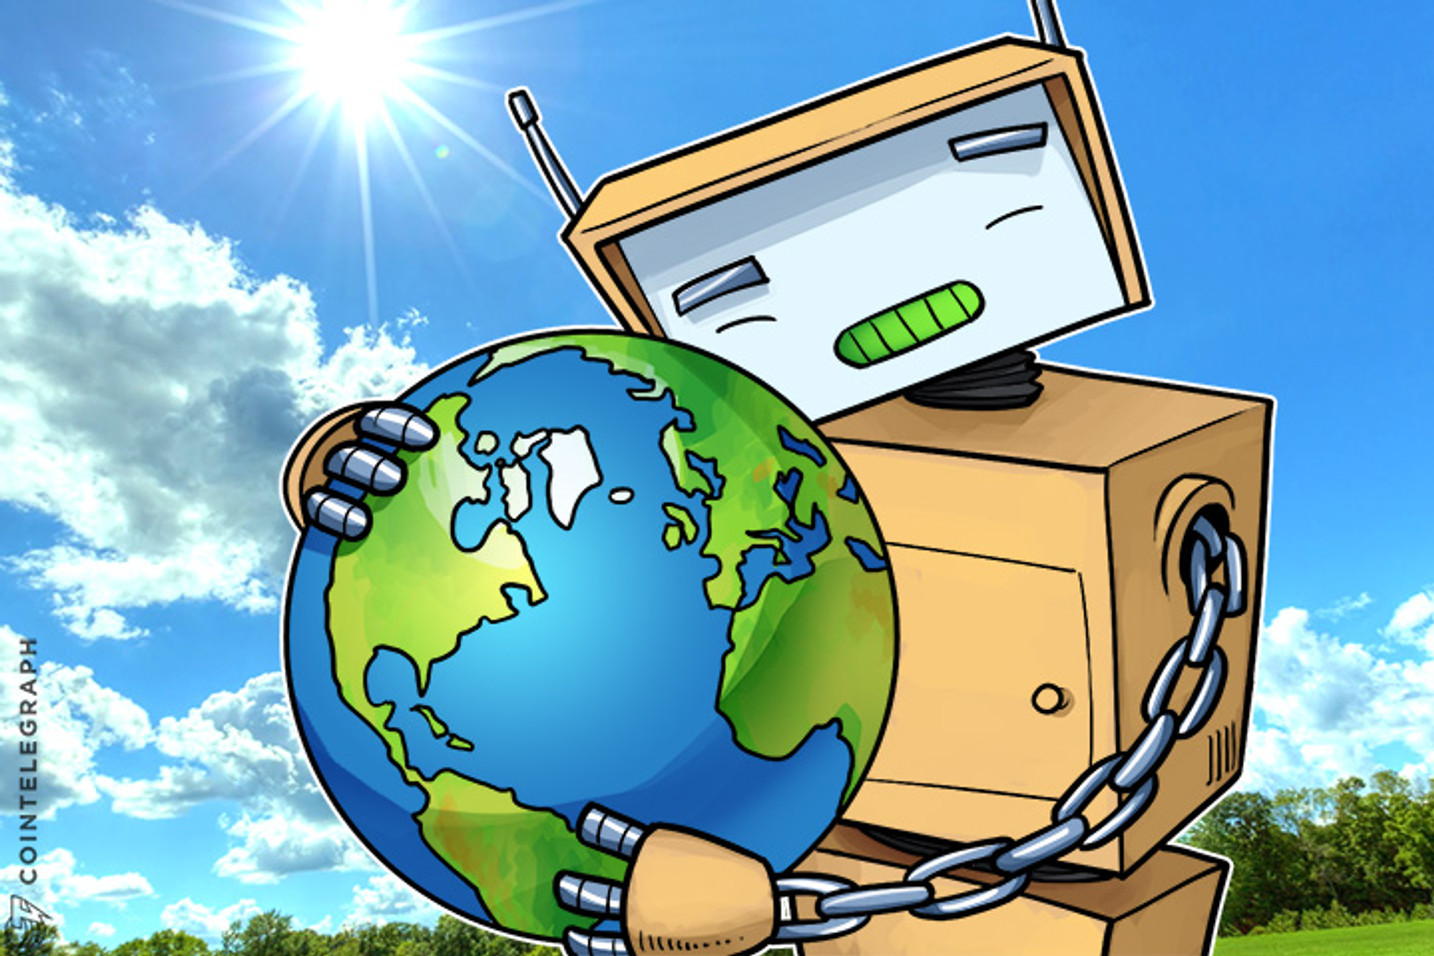 UN May Utilize Blockchain in Climate Change